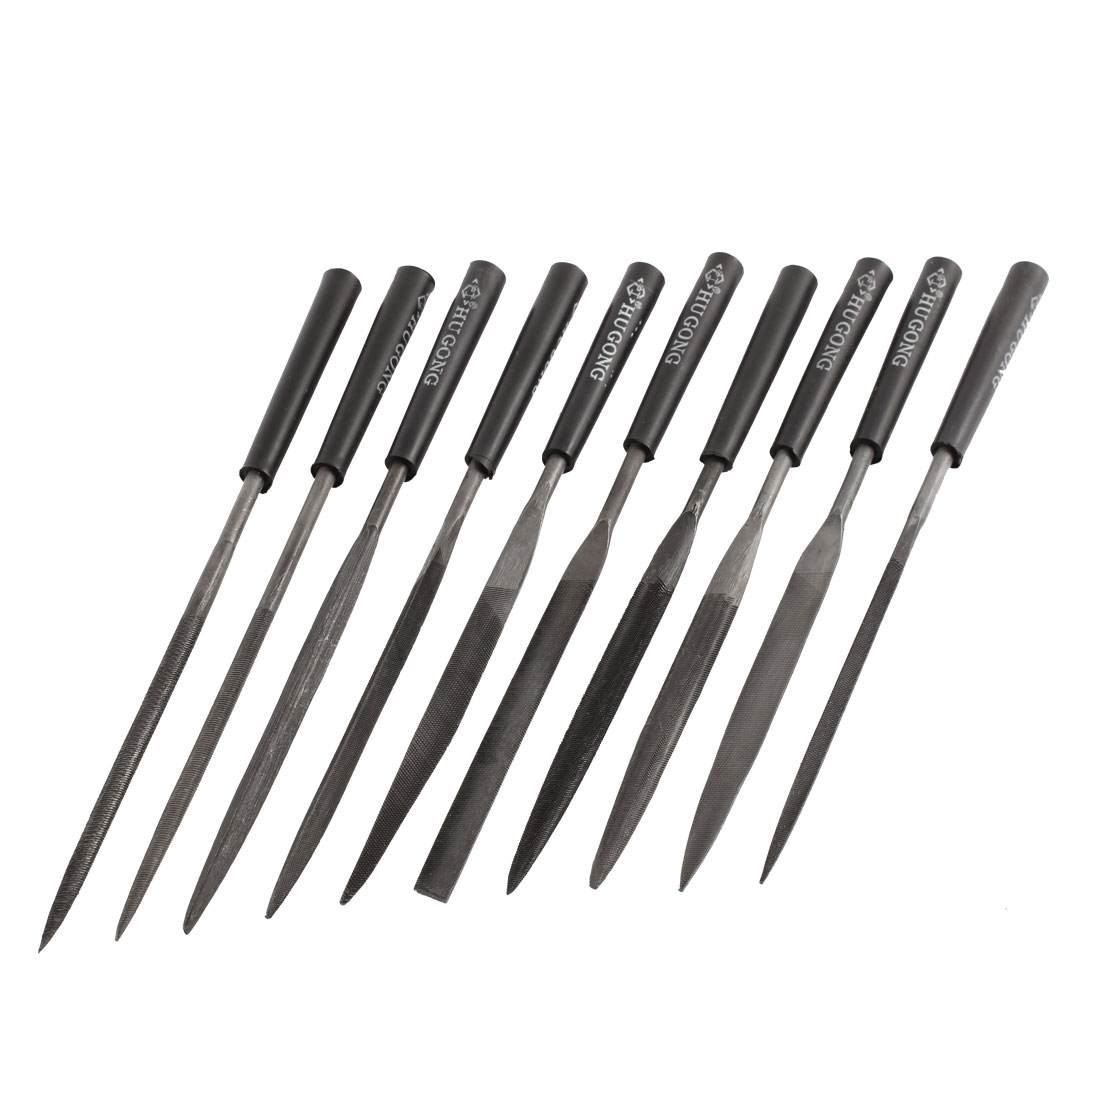 4mm x 165mm Jeweler Wood Carving Craft Min Needle File Kit 10 Pcs